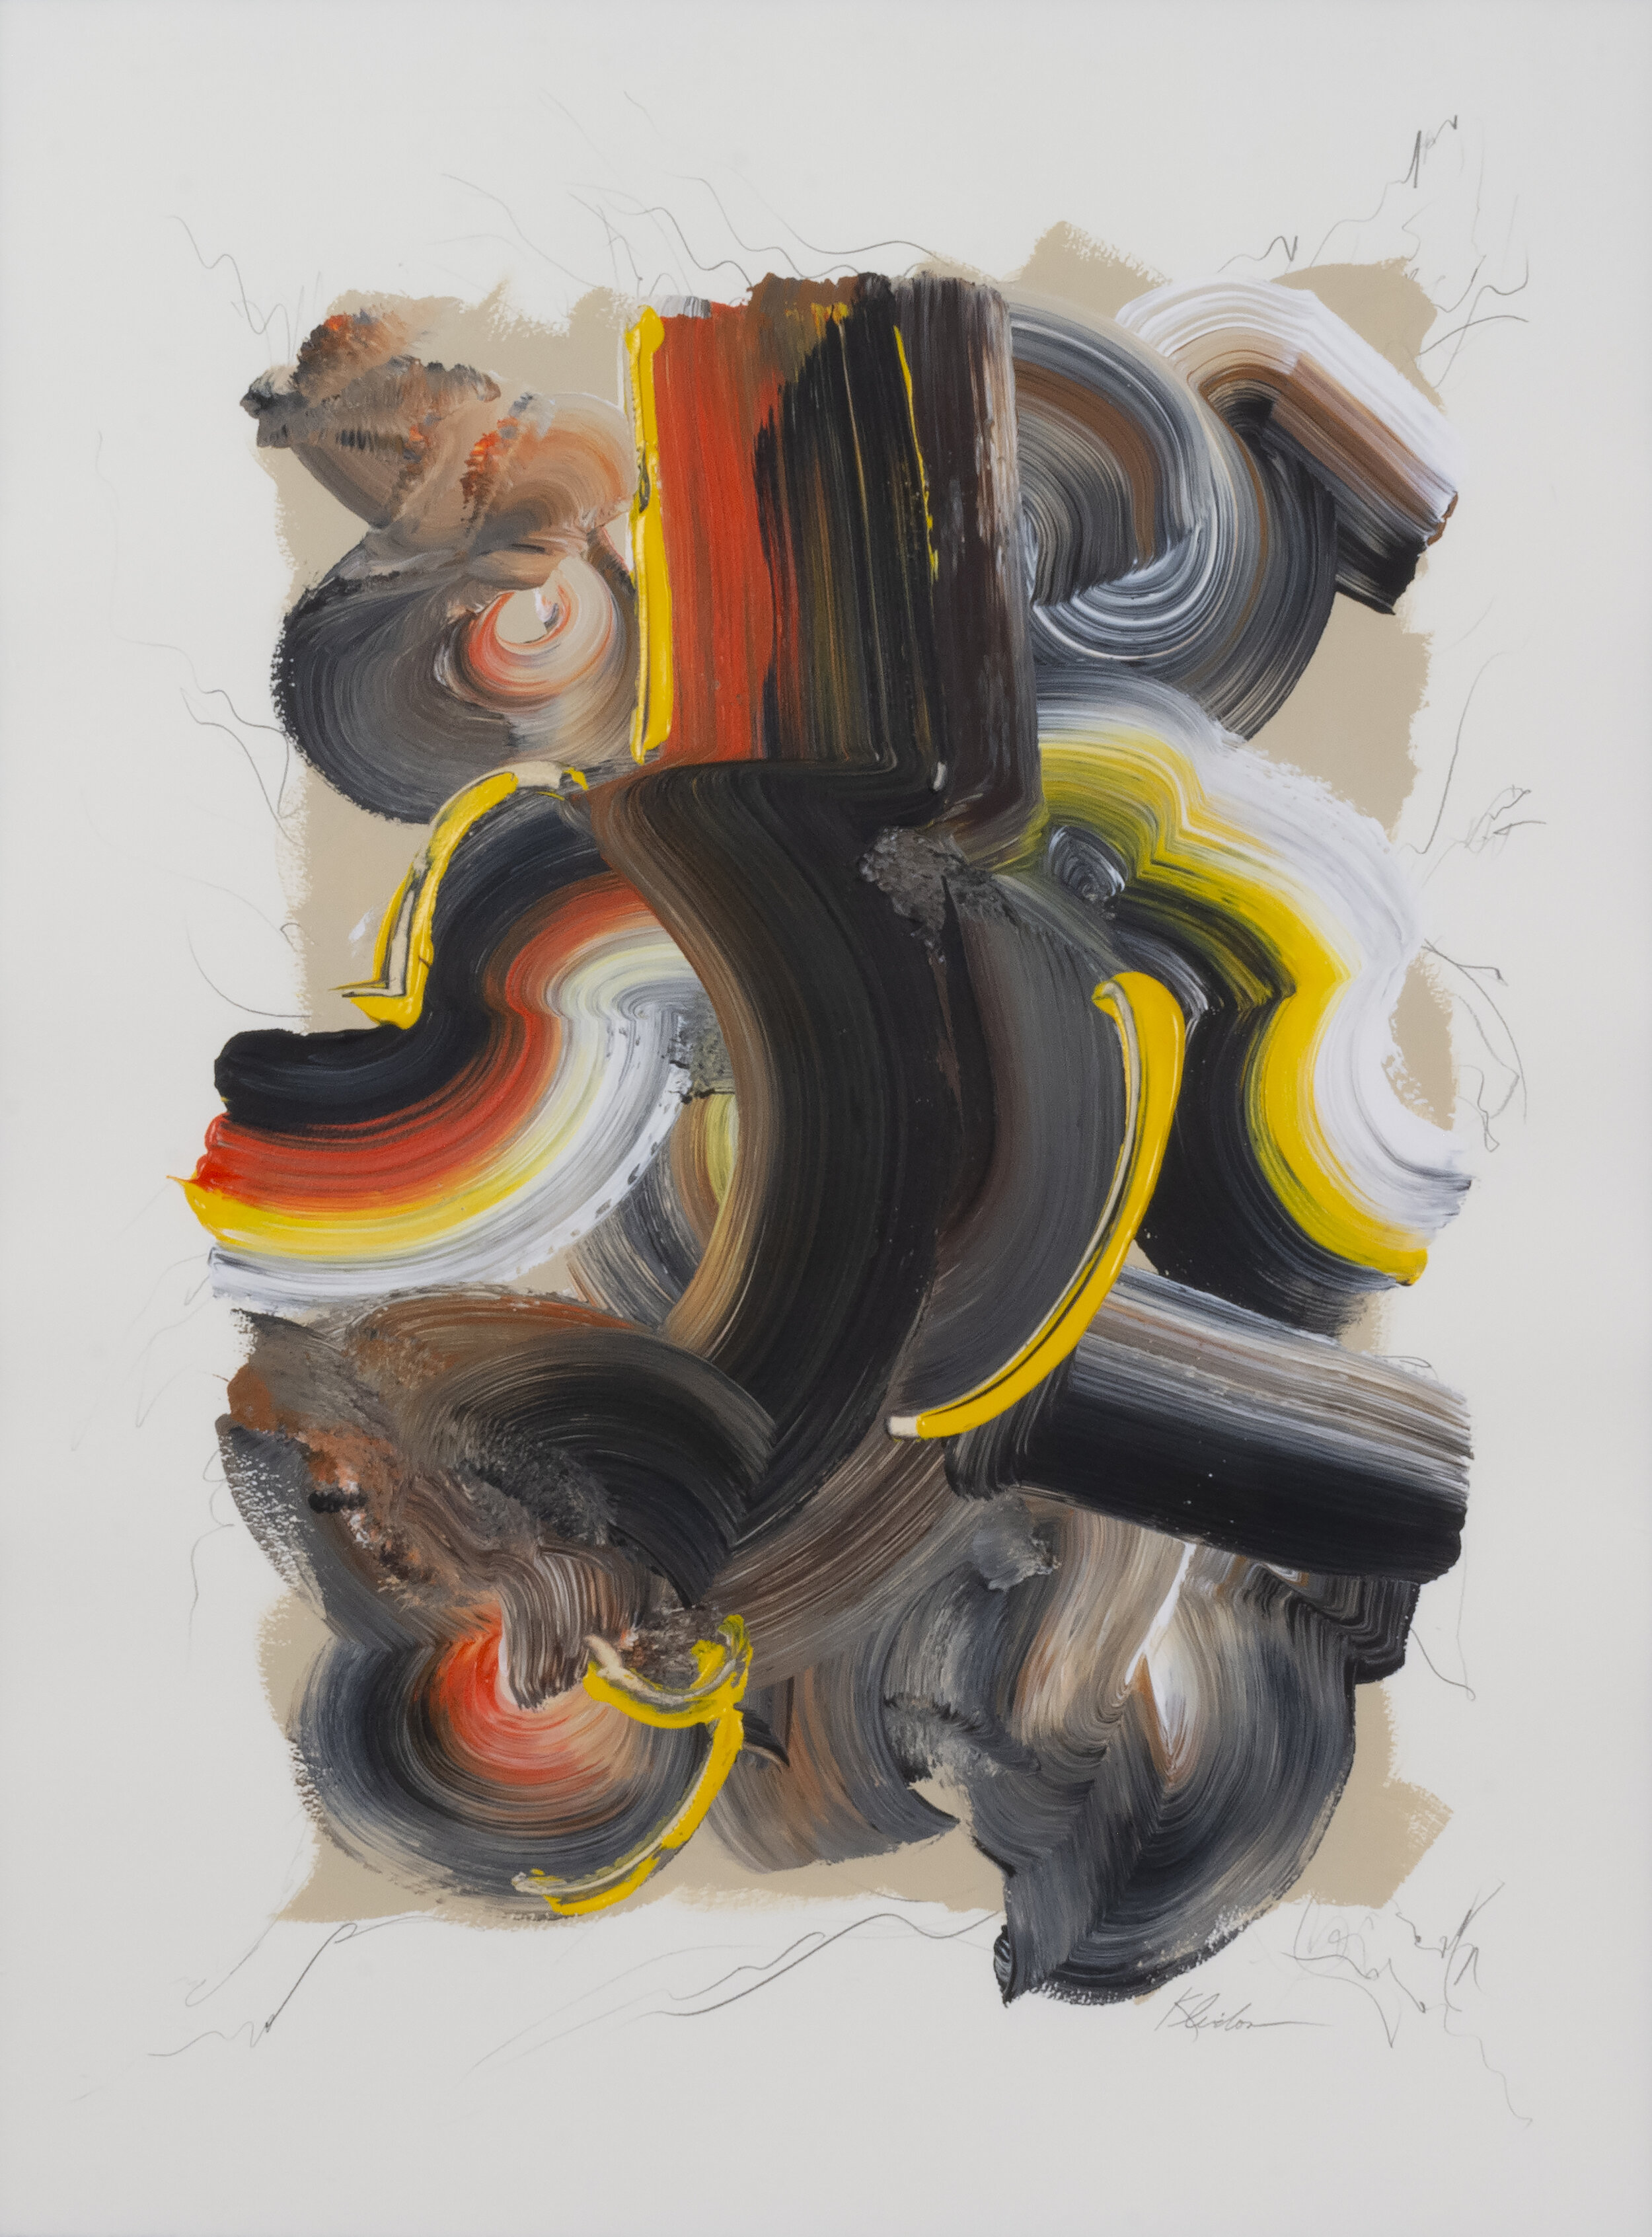 """Making Waves Vertical Series 1.5 , 2014, Acrylic and Graphite on Arches Paper, 39.5"""" x 31.5"""".  Swirling brushstrokes in black, white, orange, yellow and grey on white with graphite pencil edge."""